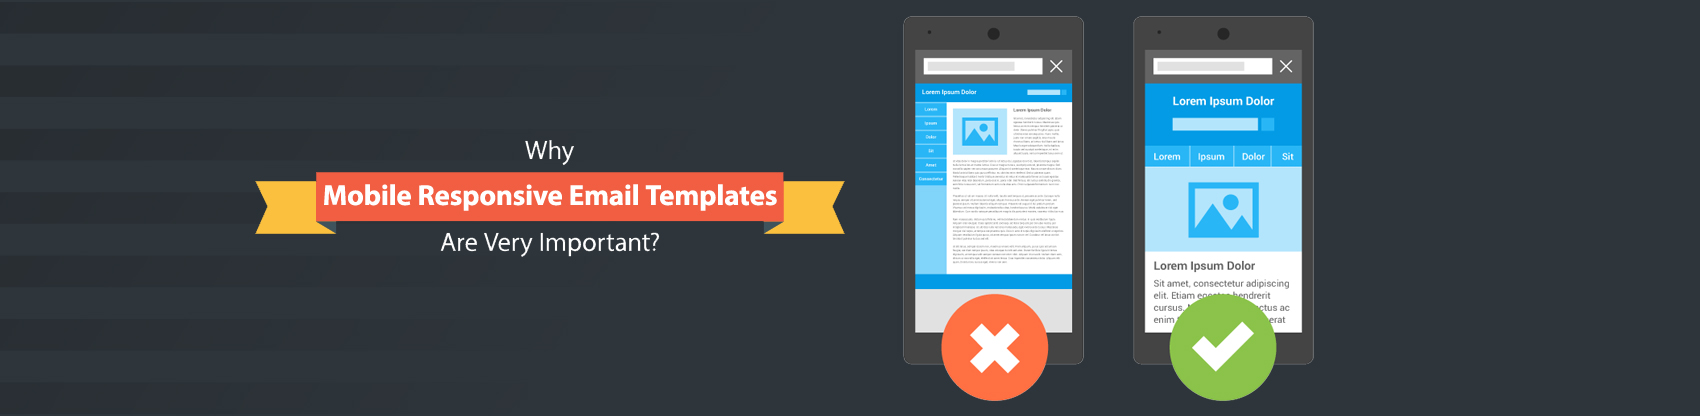 Why mobile responsive email templates are very important?